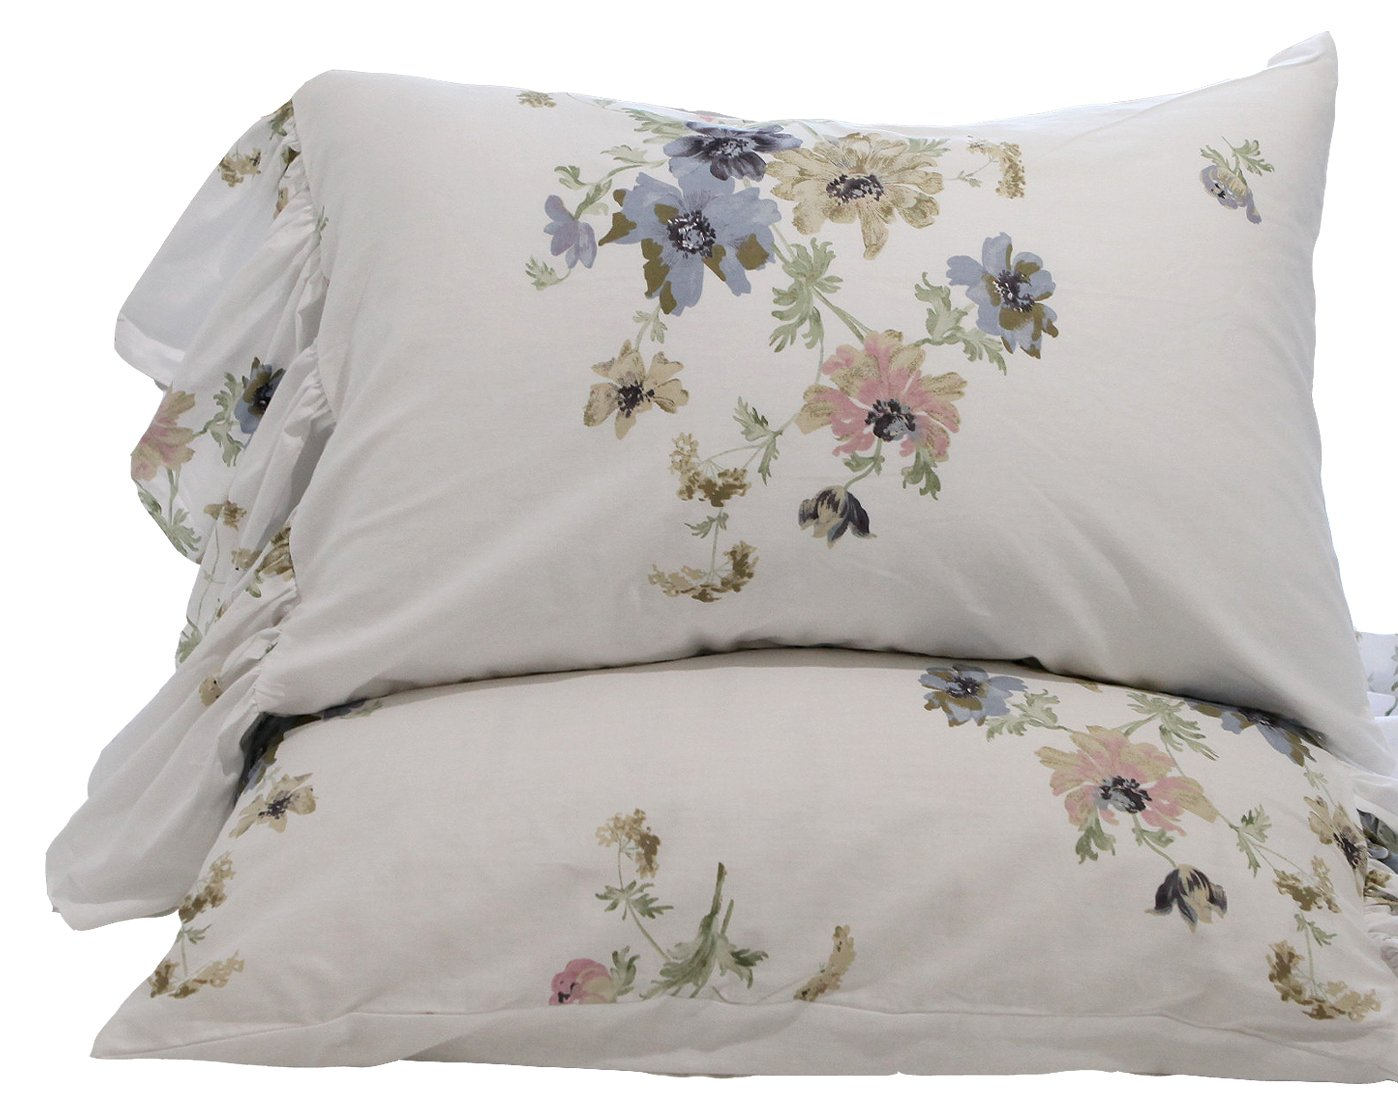 HOMIGOO Elegant Floral Printed Bedding Set Graceful Flower Printed Pure Cotton Fitted Sheet Tiwn Blue Flower